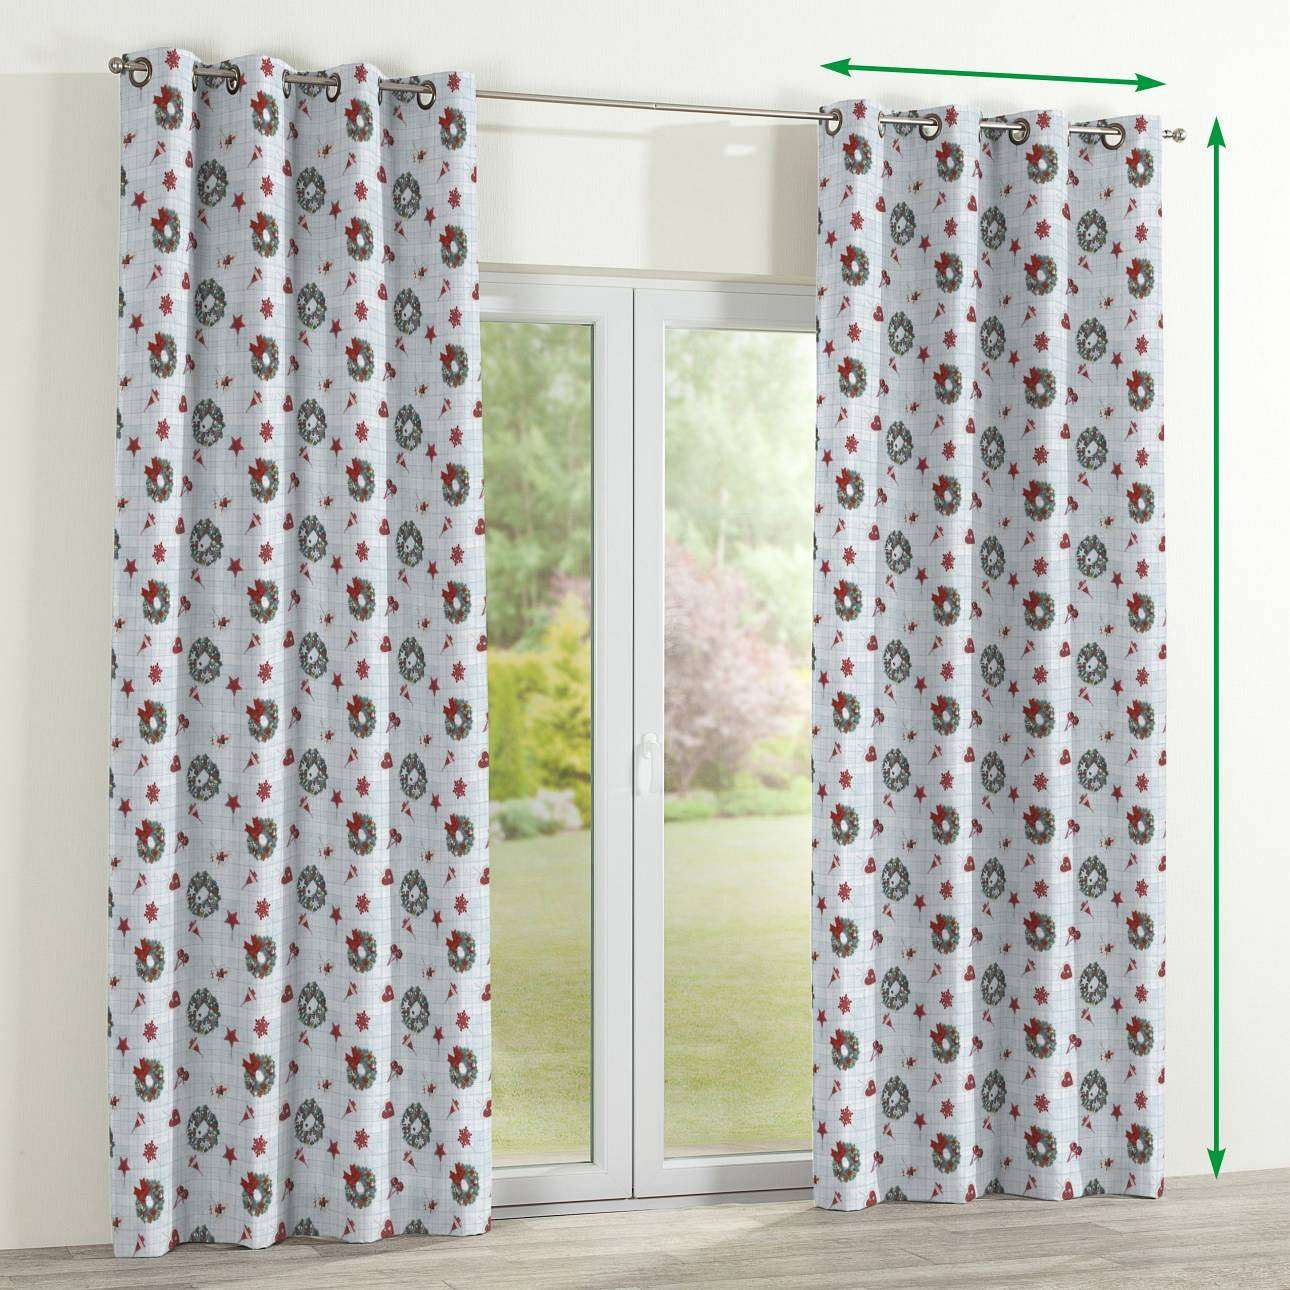 Eyelet curtains in collection Christmas, fabric: 629-26